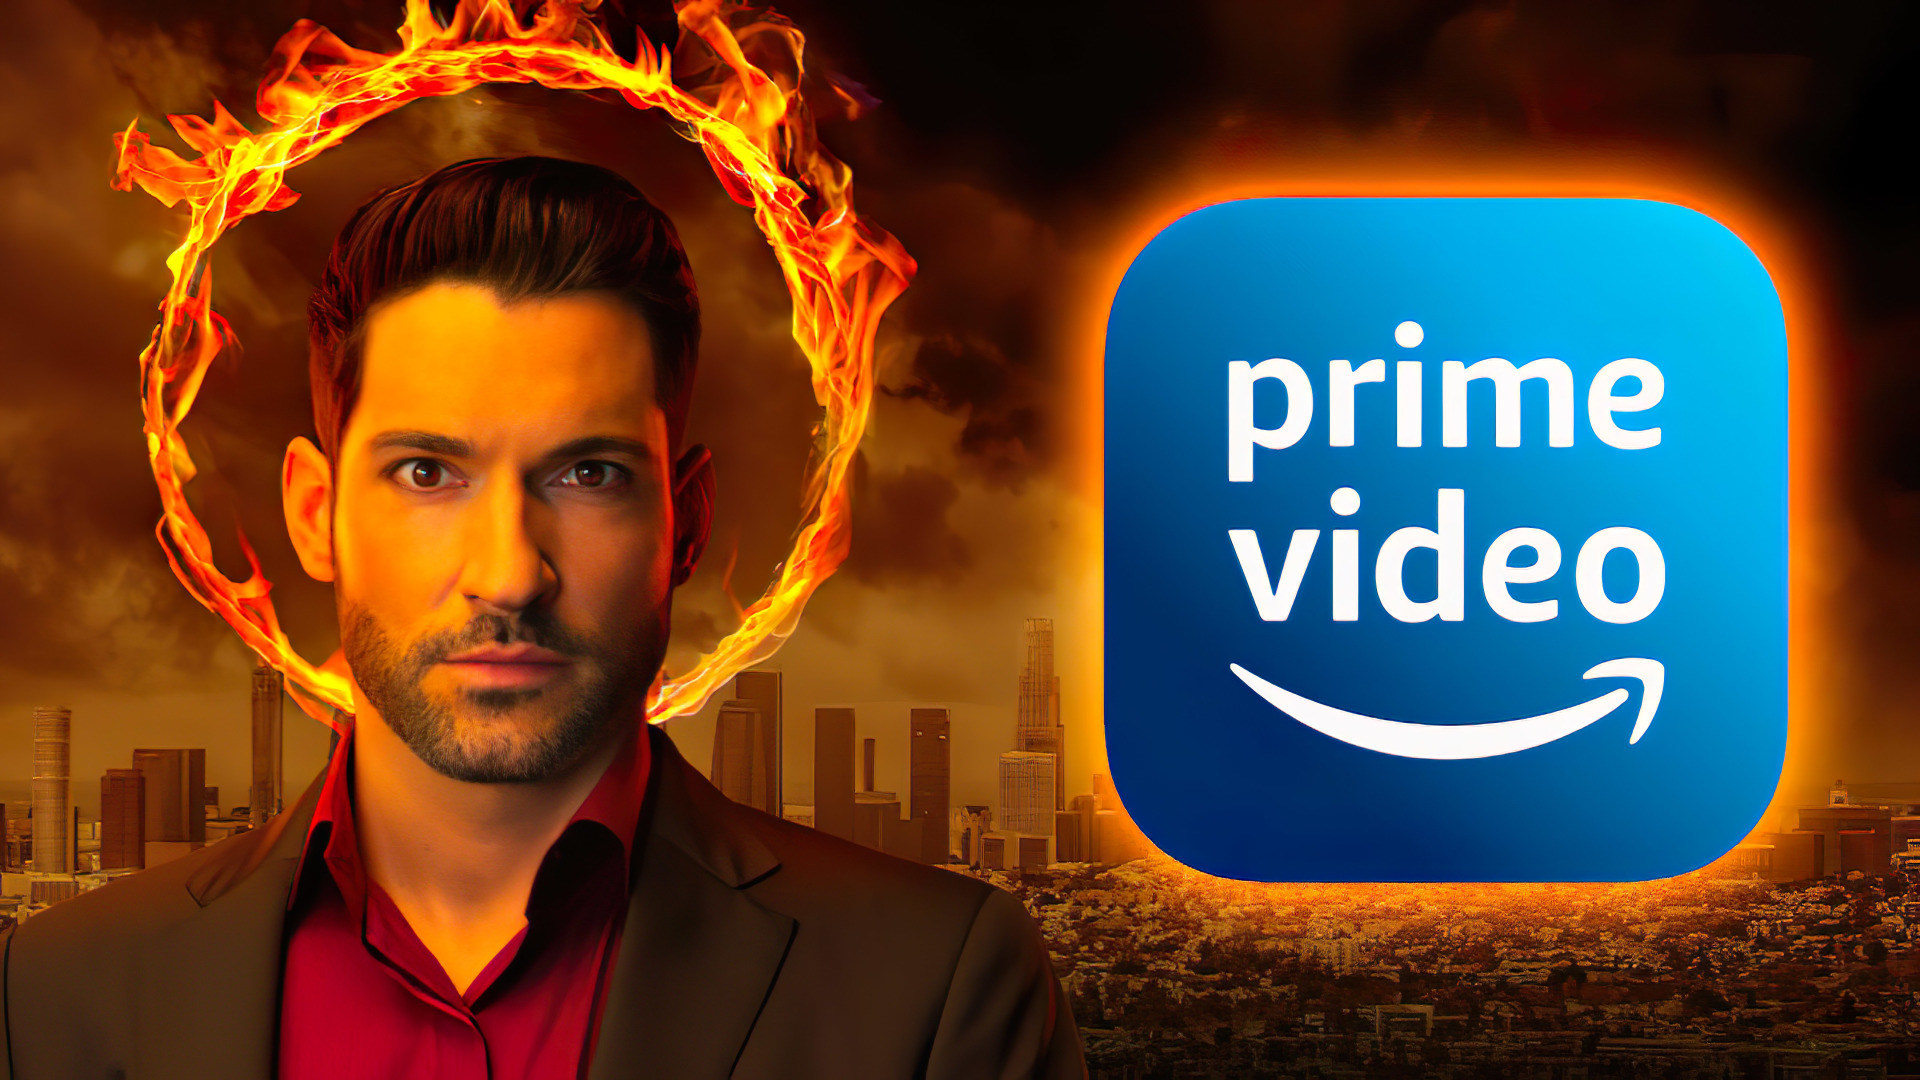 Streaming, Amazon, Tv, Fernsehen, Filme, Streamingportal, Serien, Videostreaming, Amazon Prime Video, August 2020, Lucifer